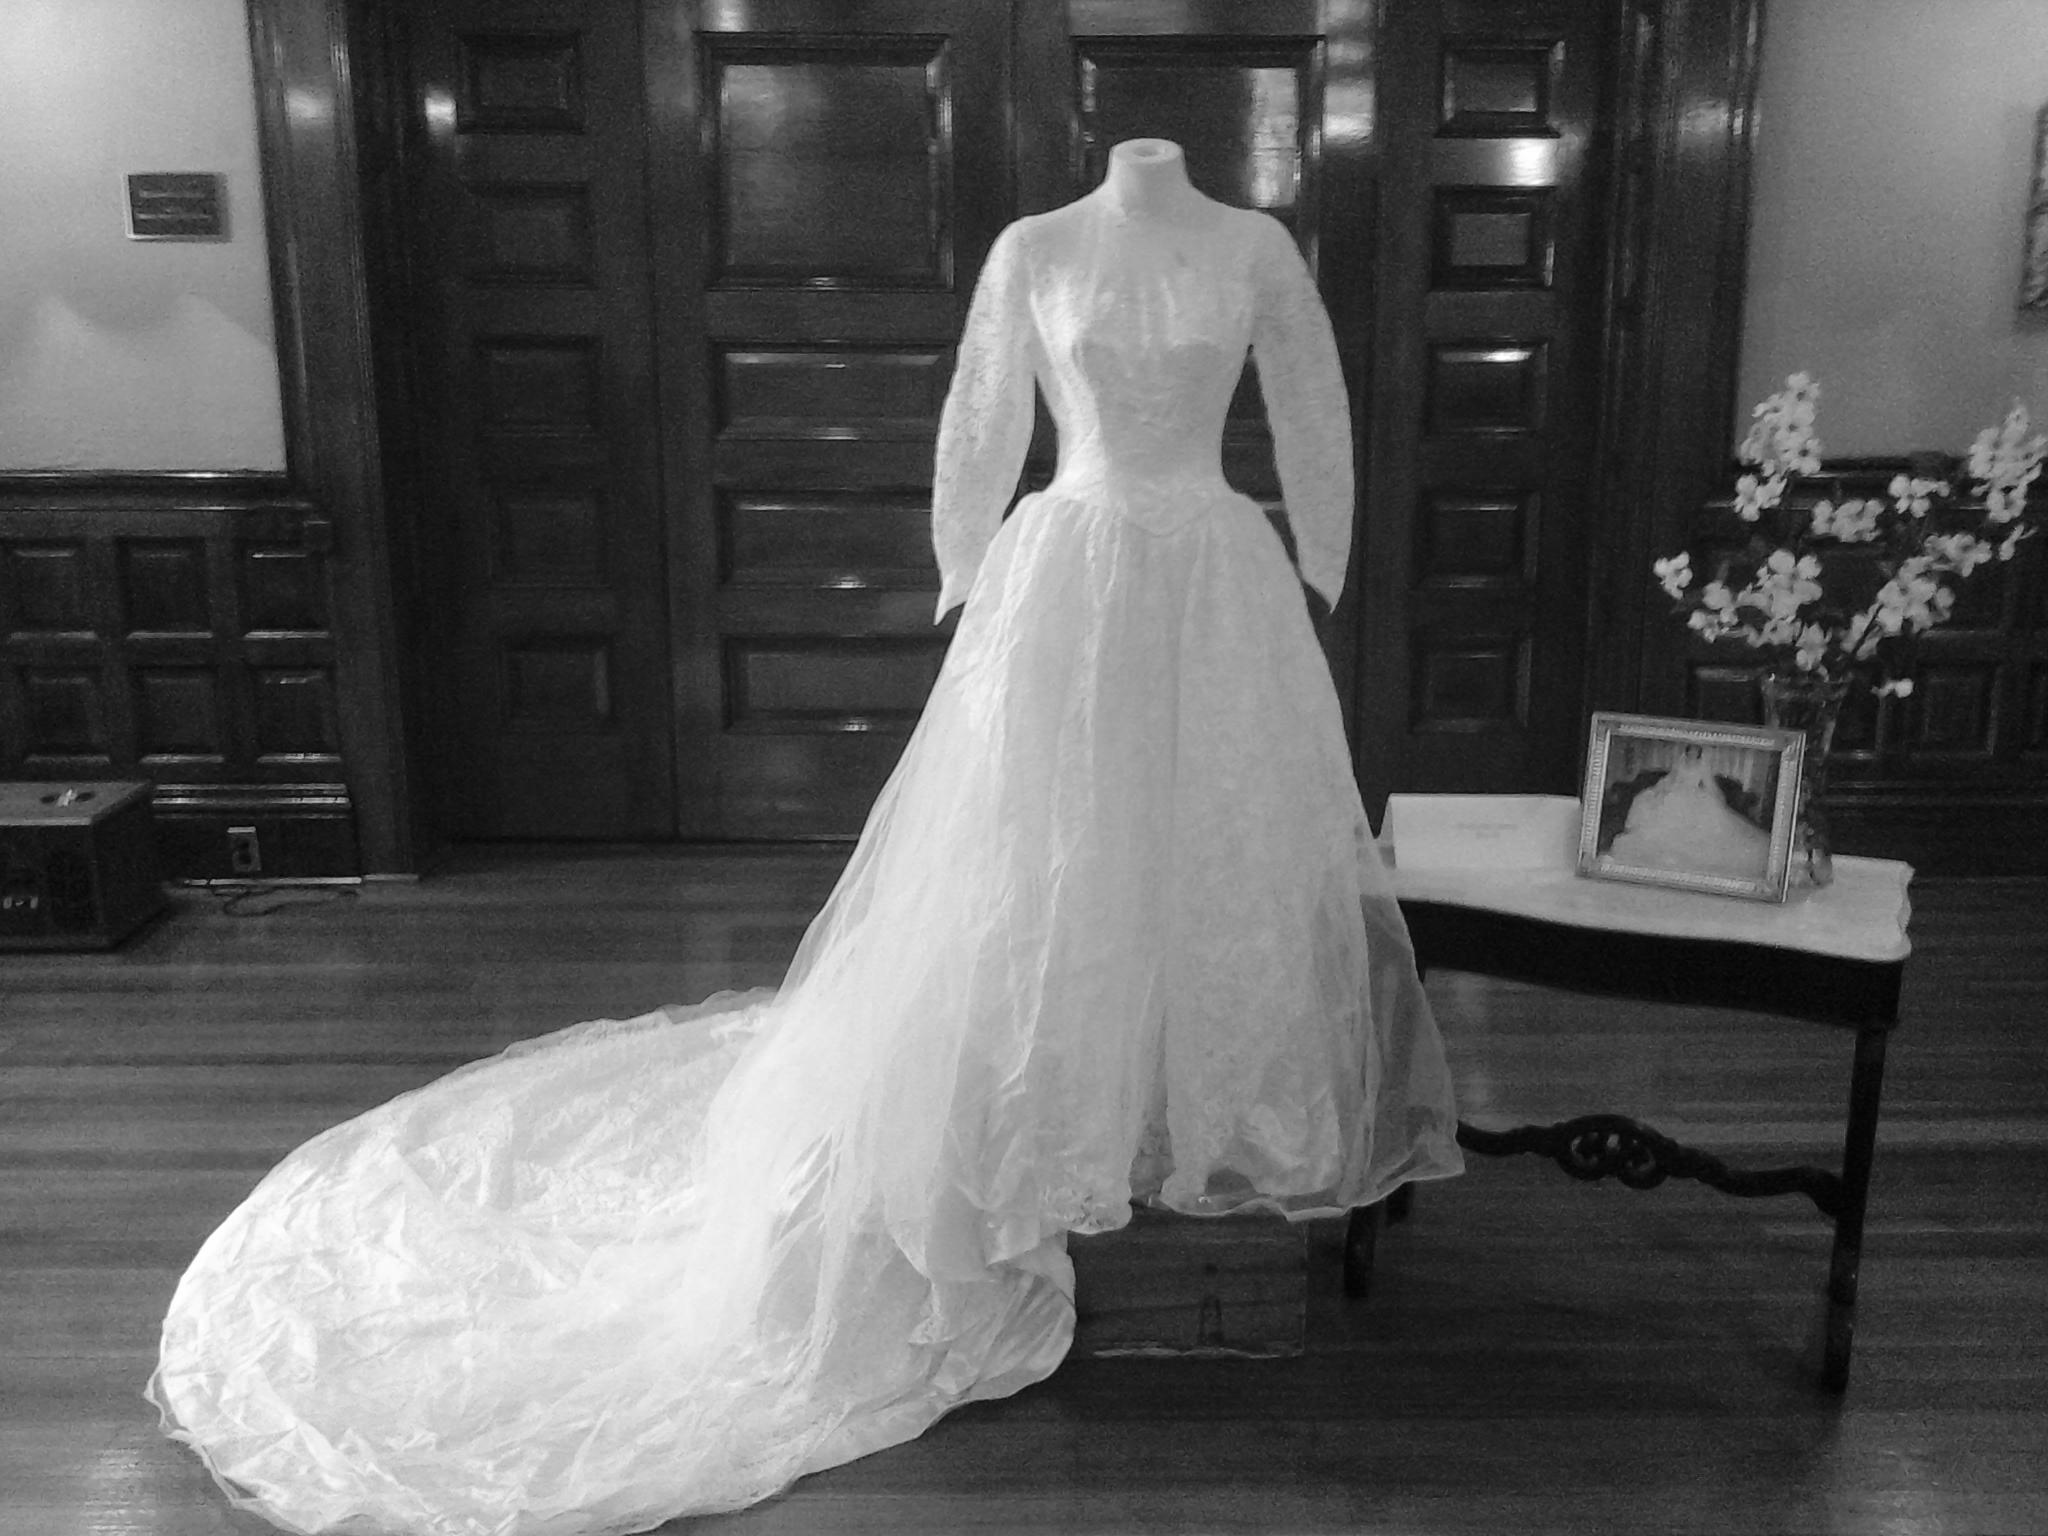 'Here Comes the Brides' exhibit at the MPL